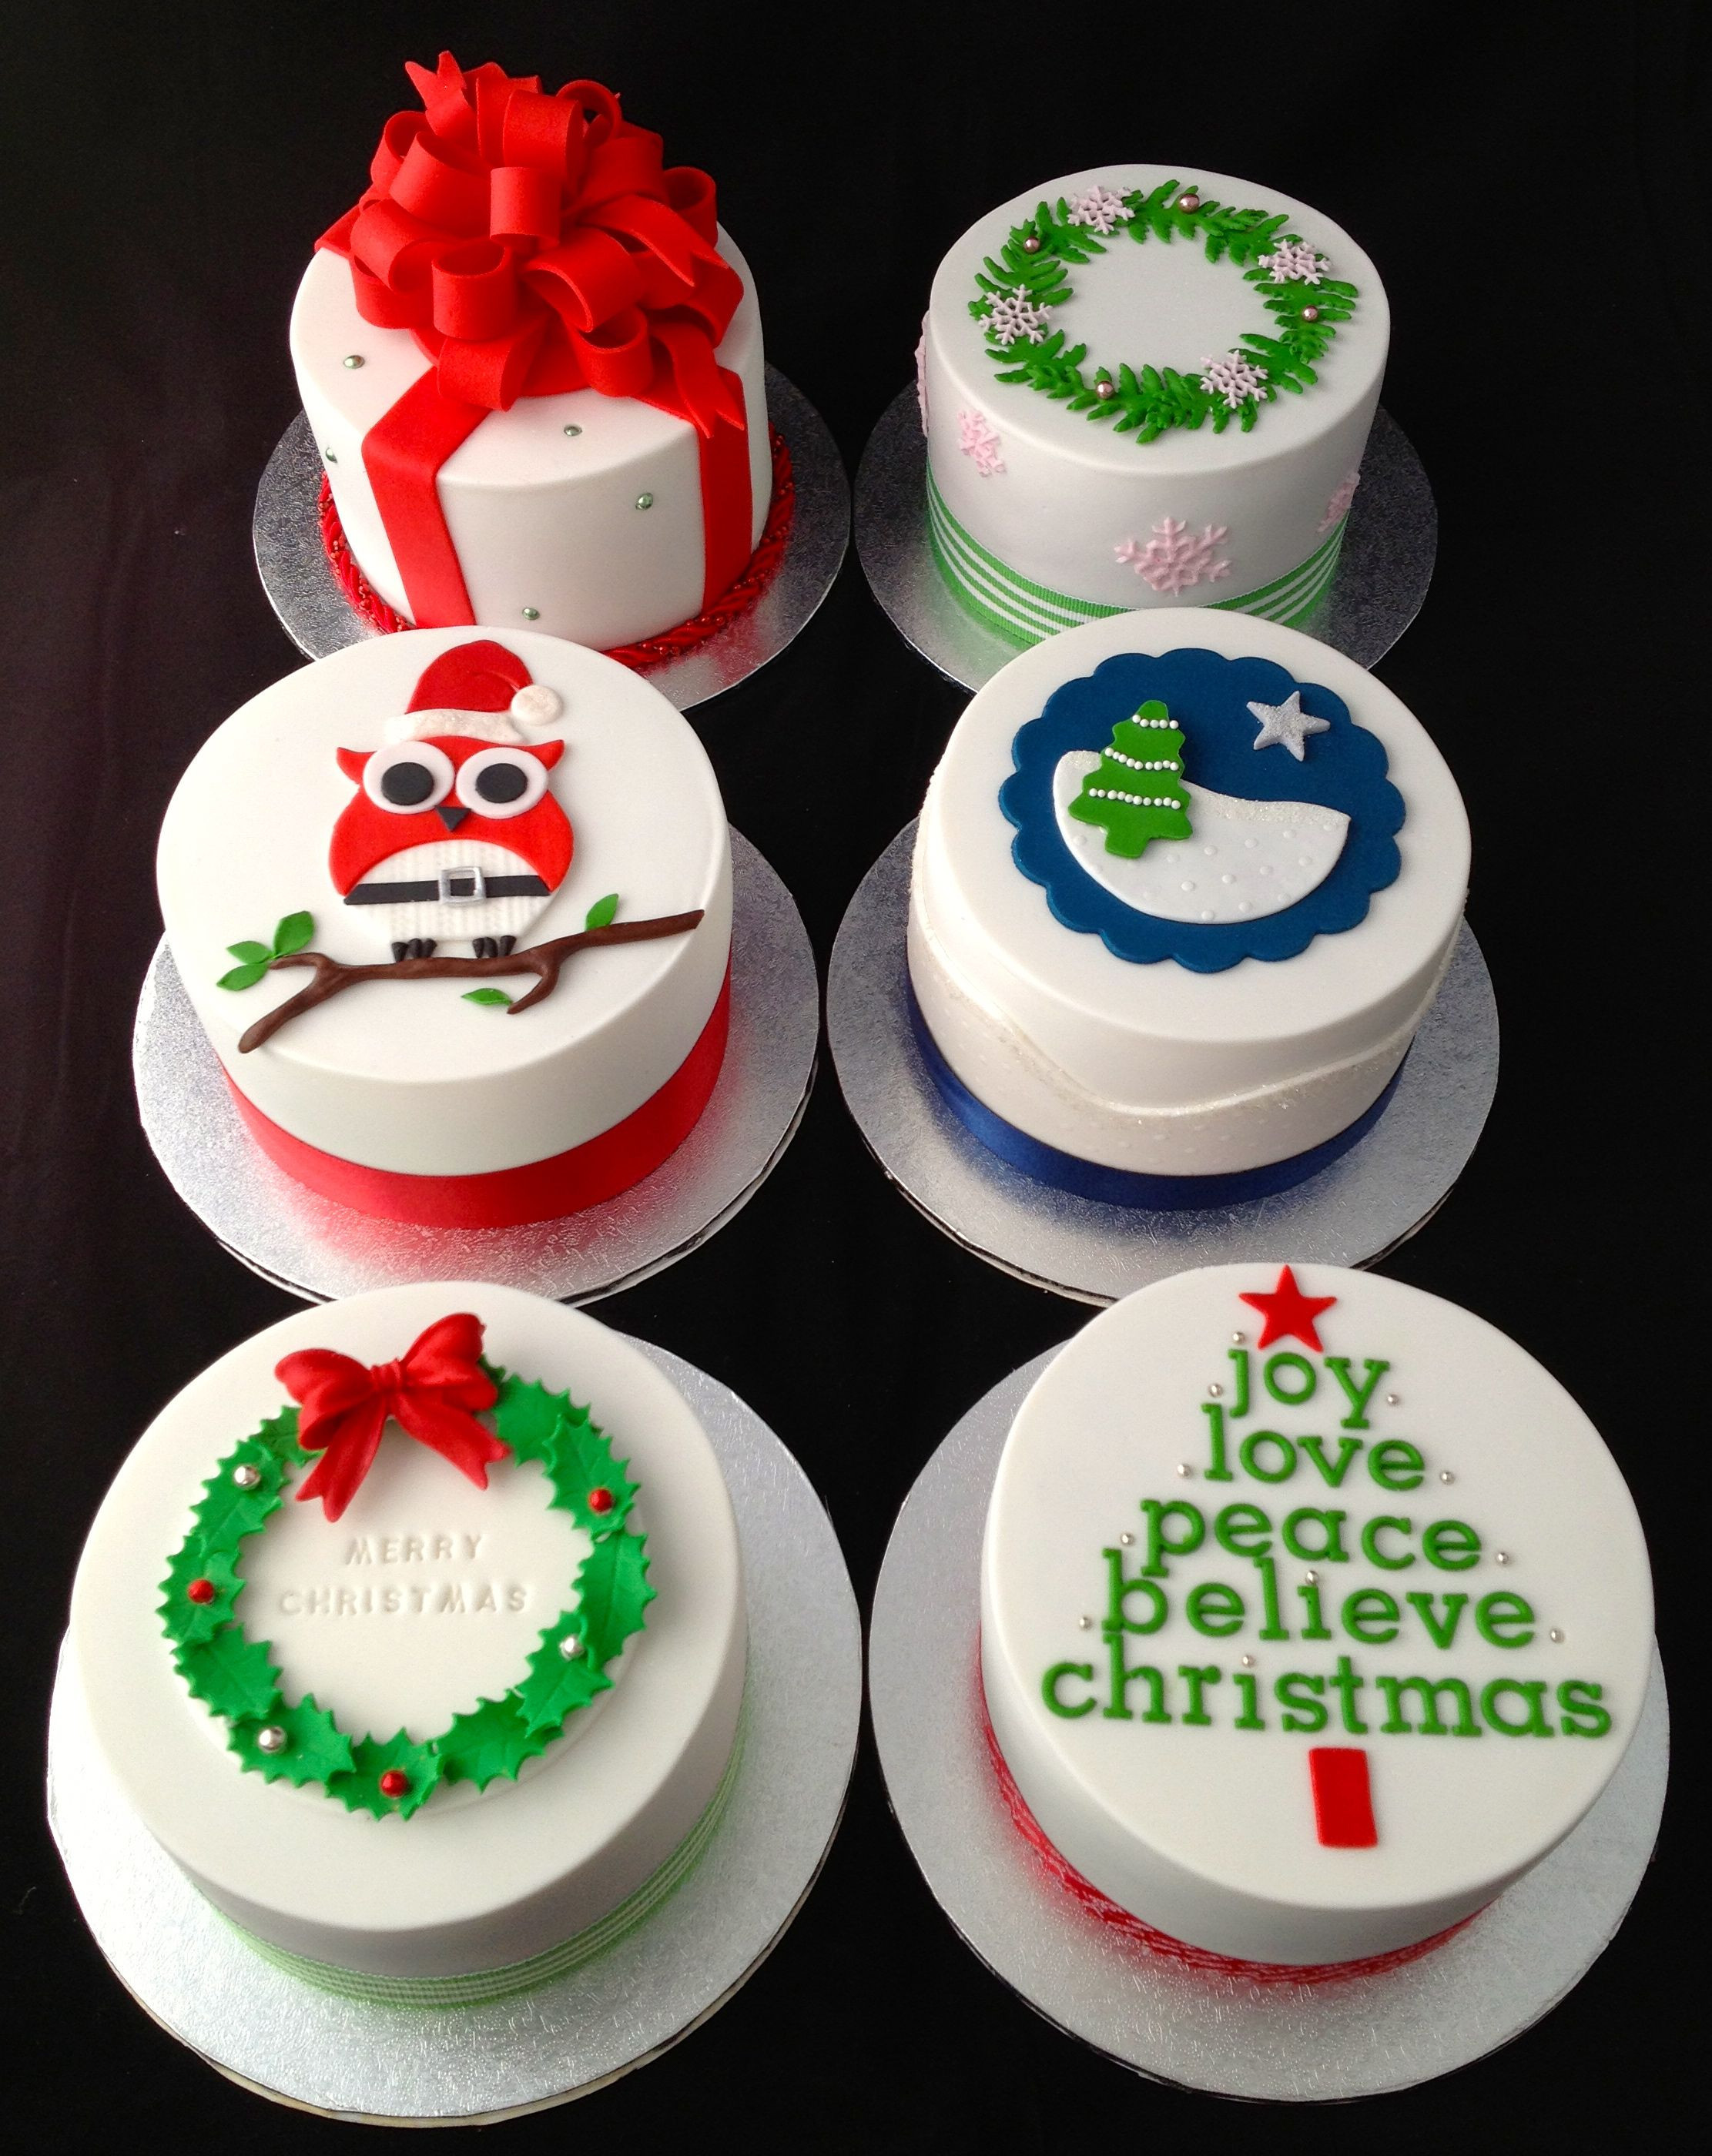 "Mini Christmas Cakes Trying out cake designs for this year 4"" mini fruit cakes"